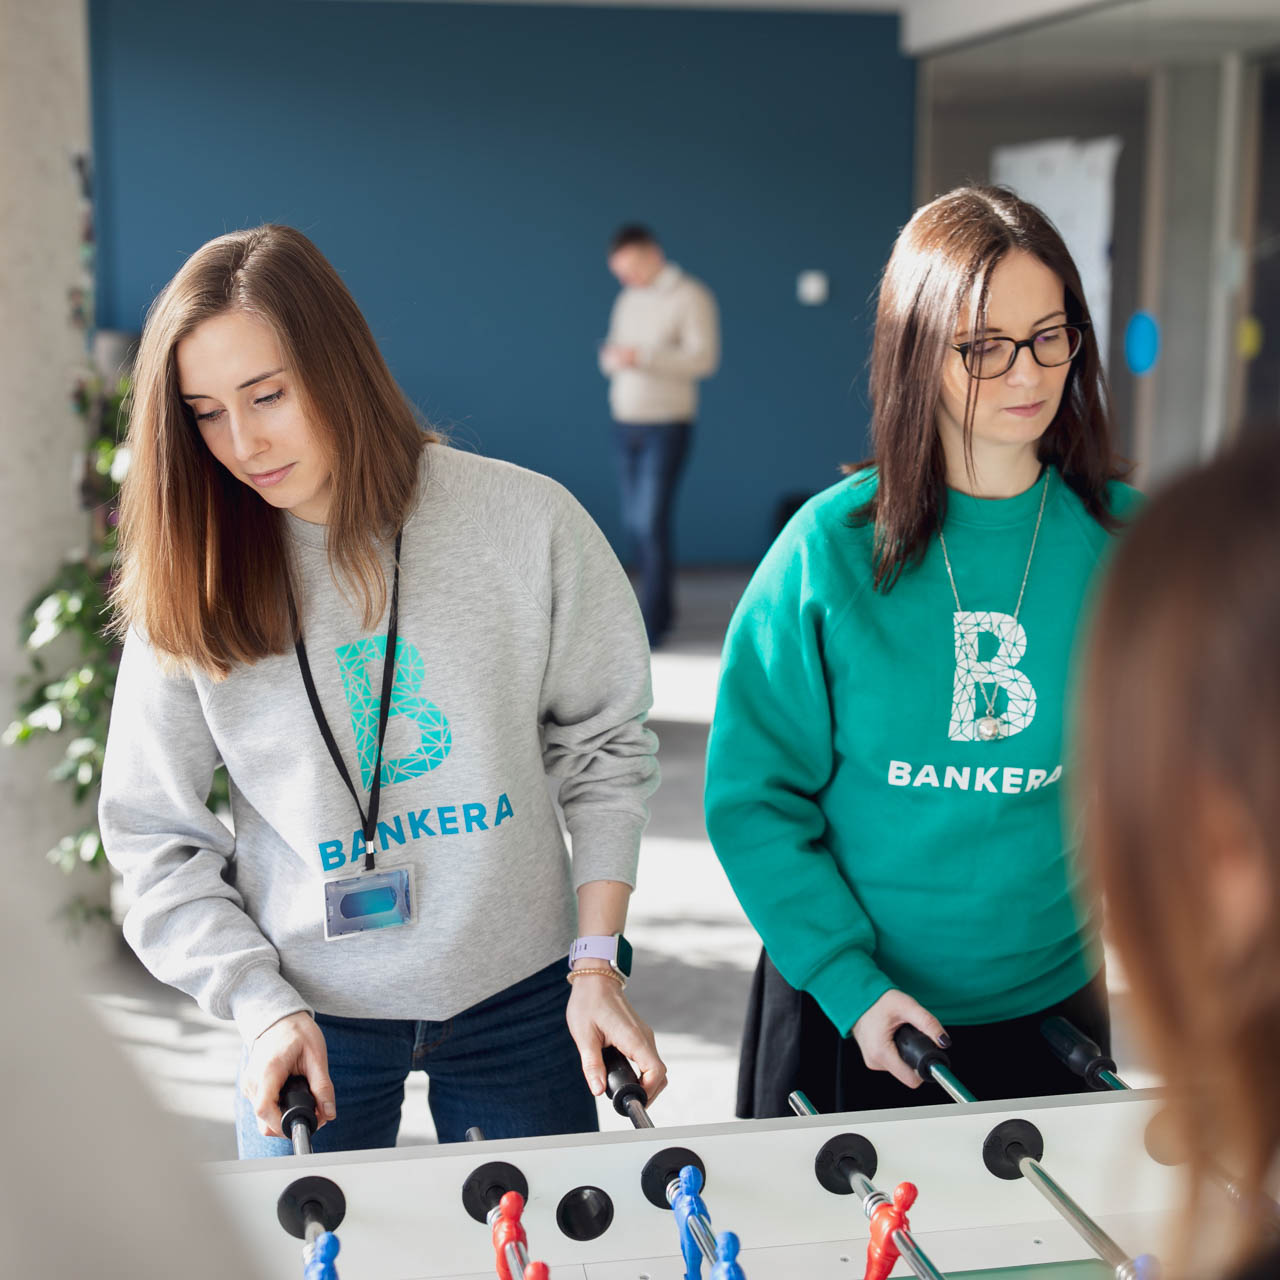 Bankera provides its employees with a number of office perks.